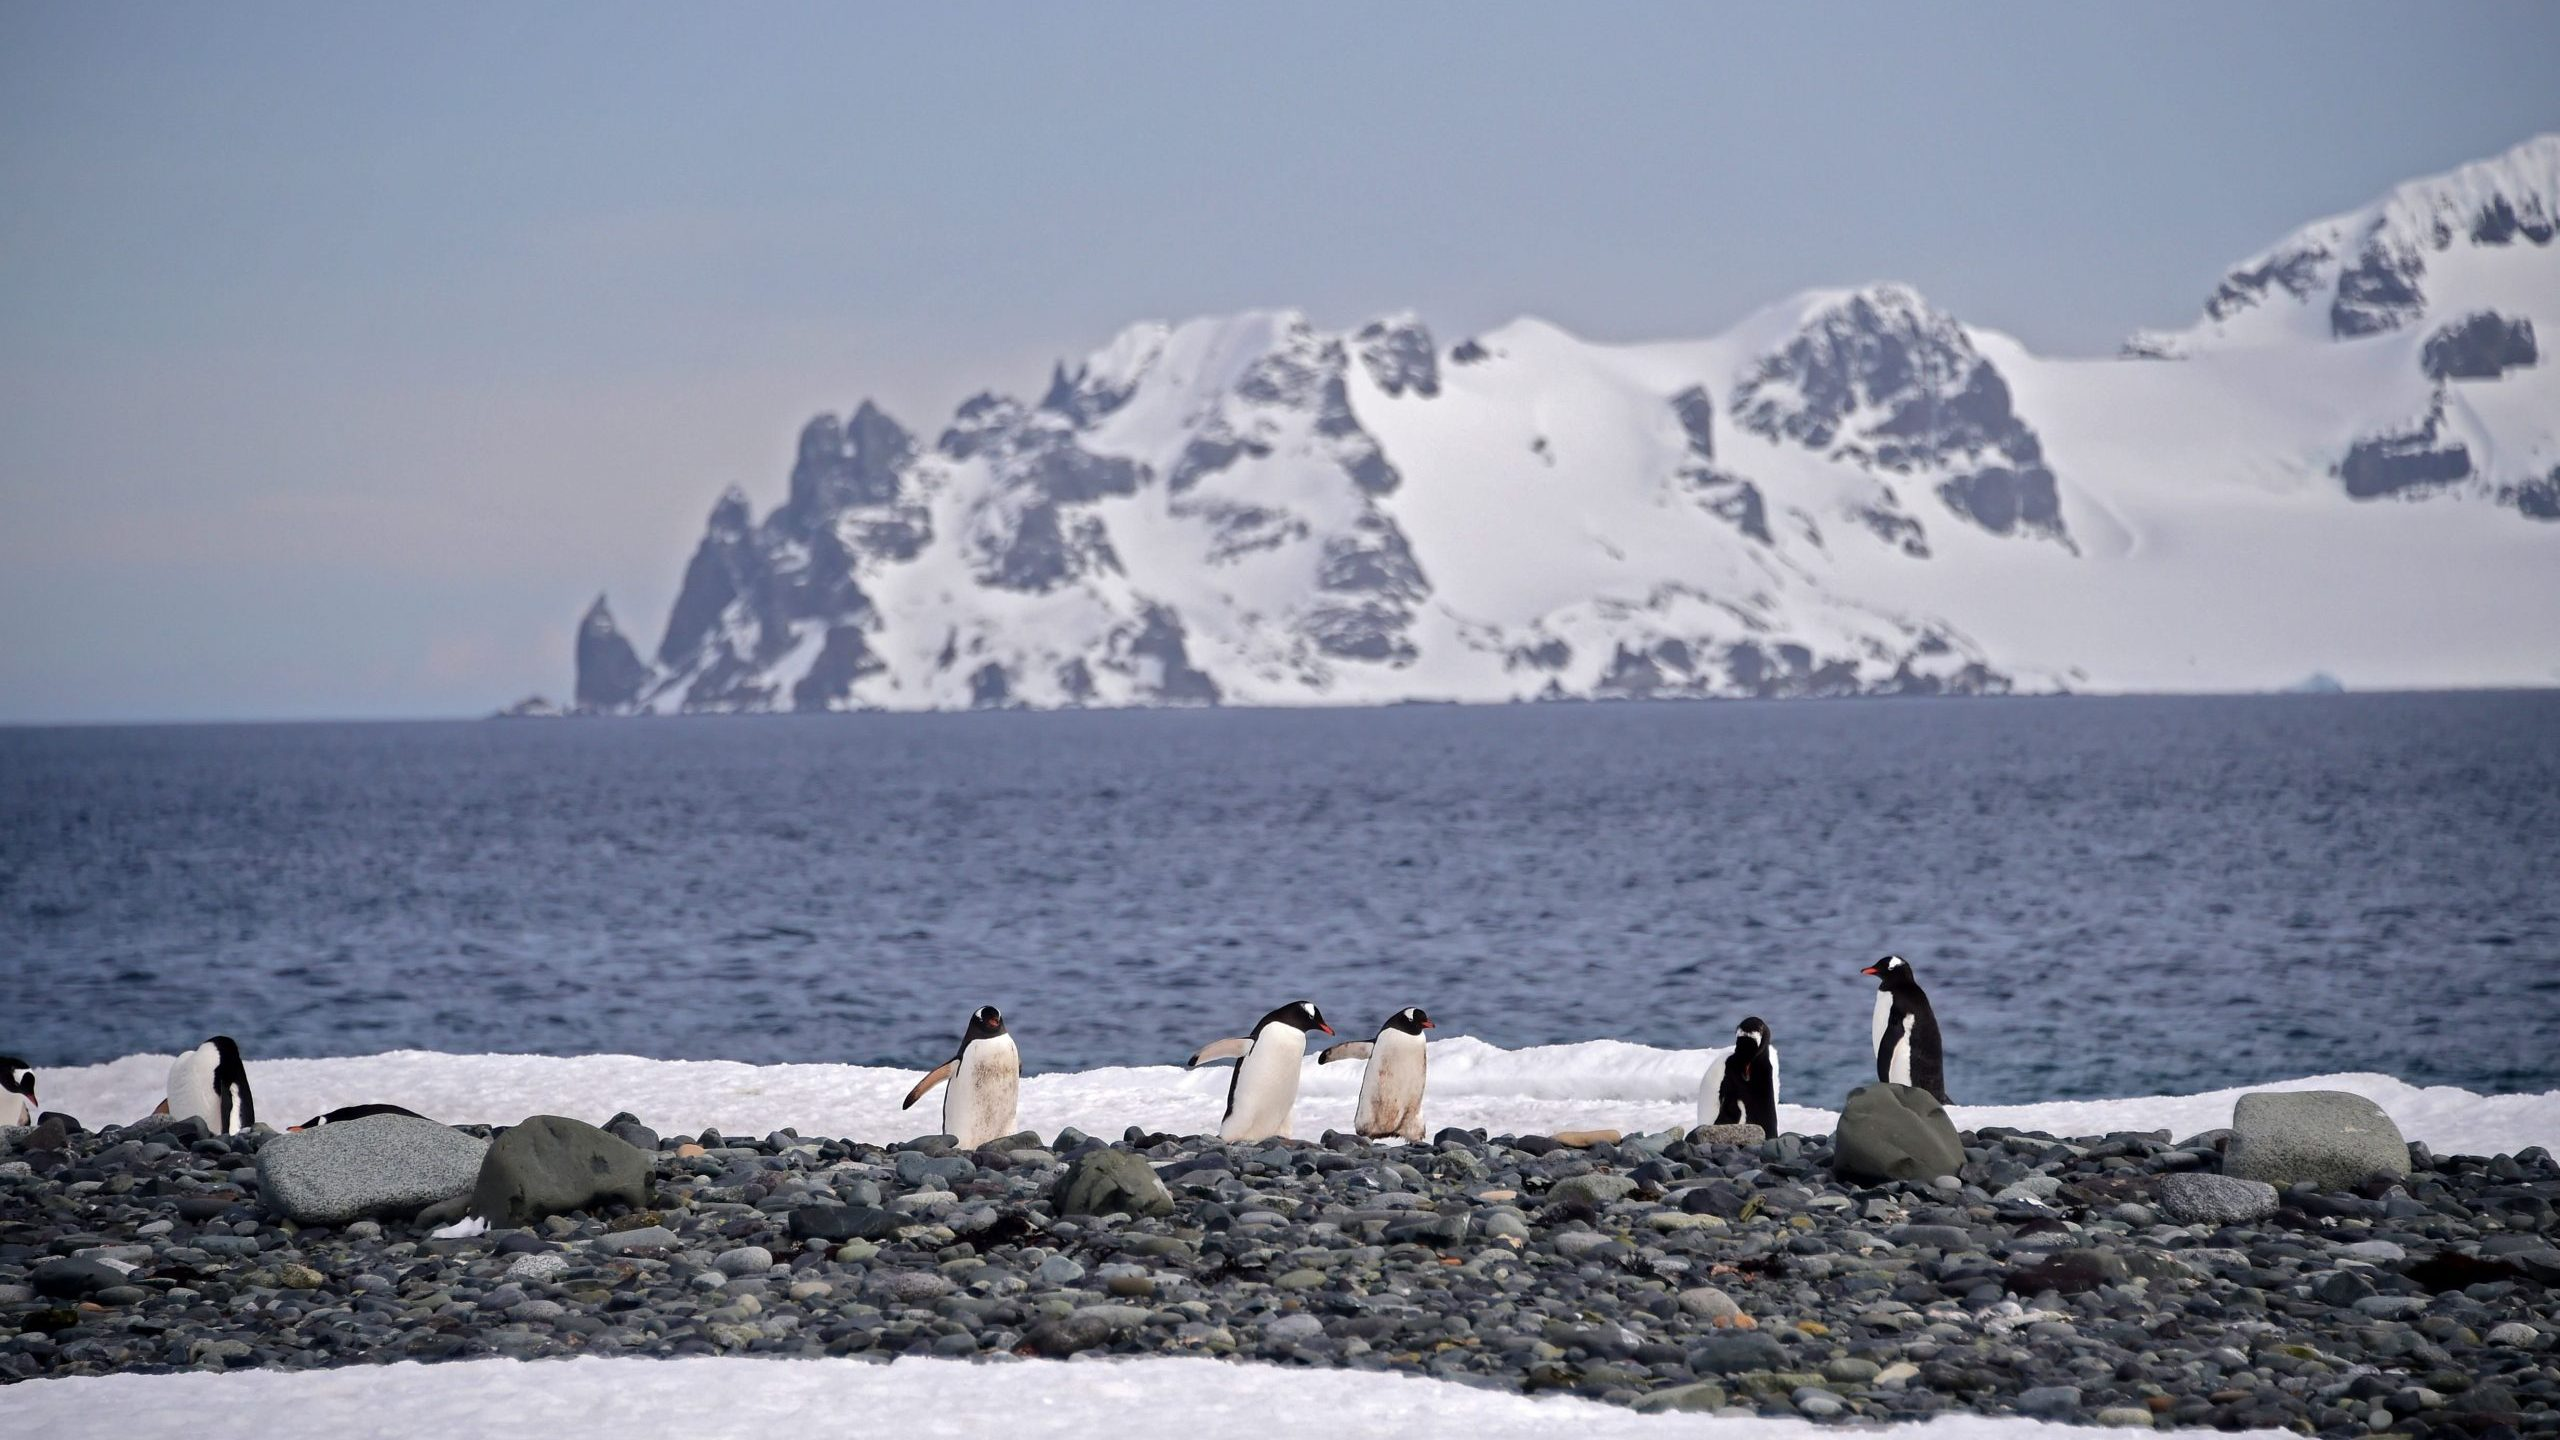 Gentoo penguins are seen at the Yankee Harbour in the South Shetland Islands, Antarctica, on Nov. 6, 2019. (Credit: Johan Ordonez / AFP / Getty Images)